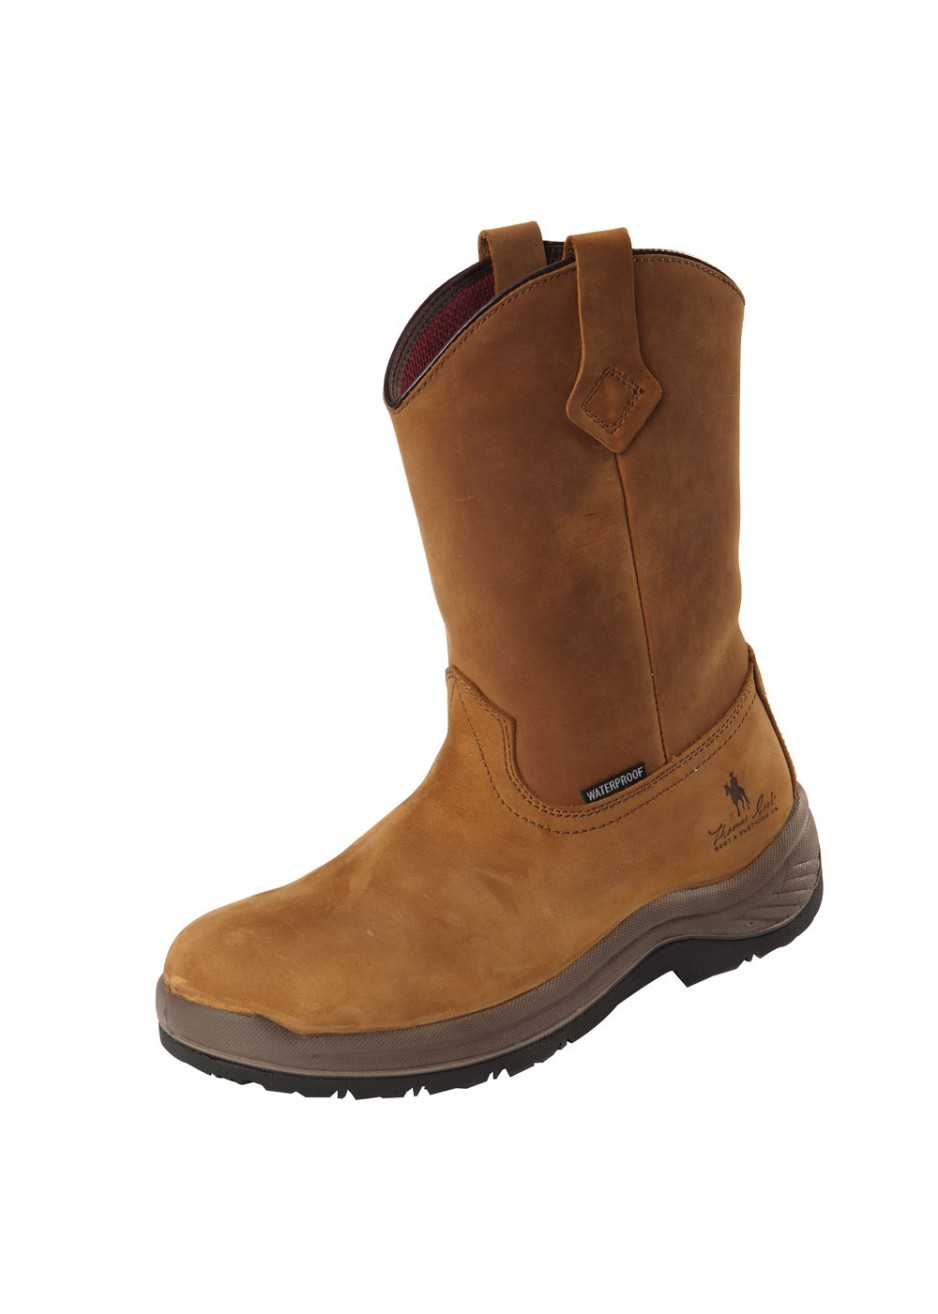 FERGUSON NON-STEEL TOE BOOT